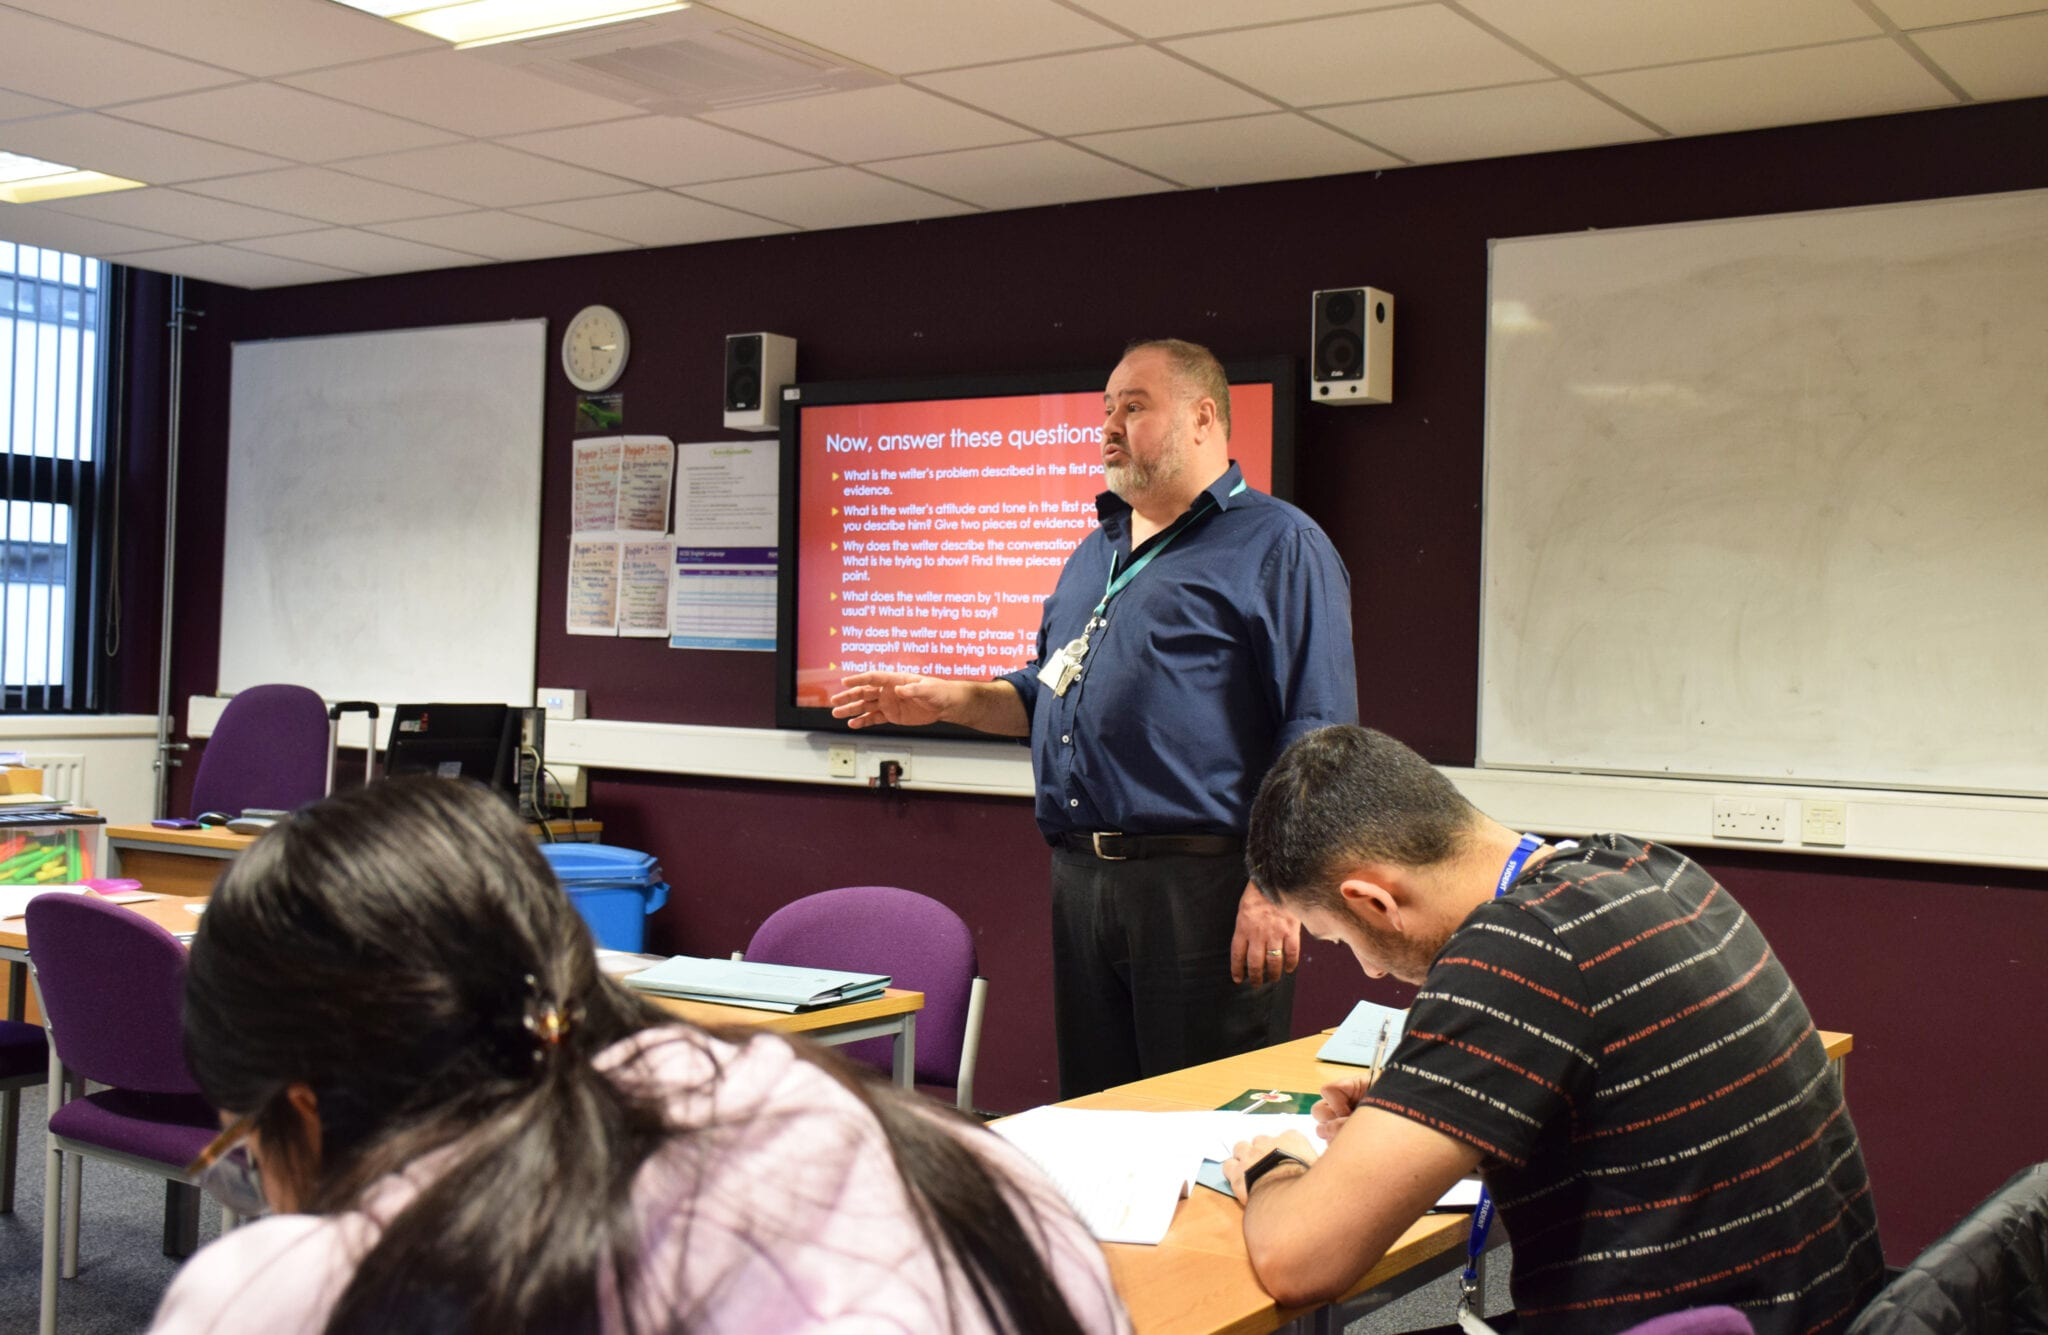 GCSE English Teaching speaking to a class full of students